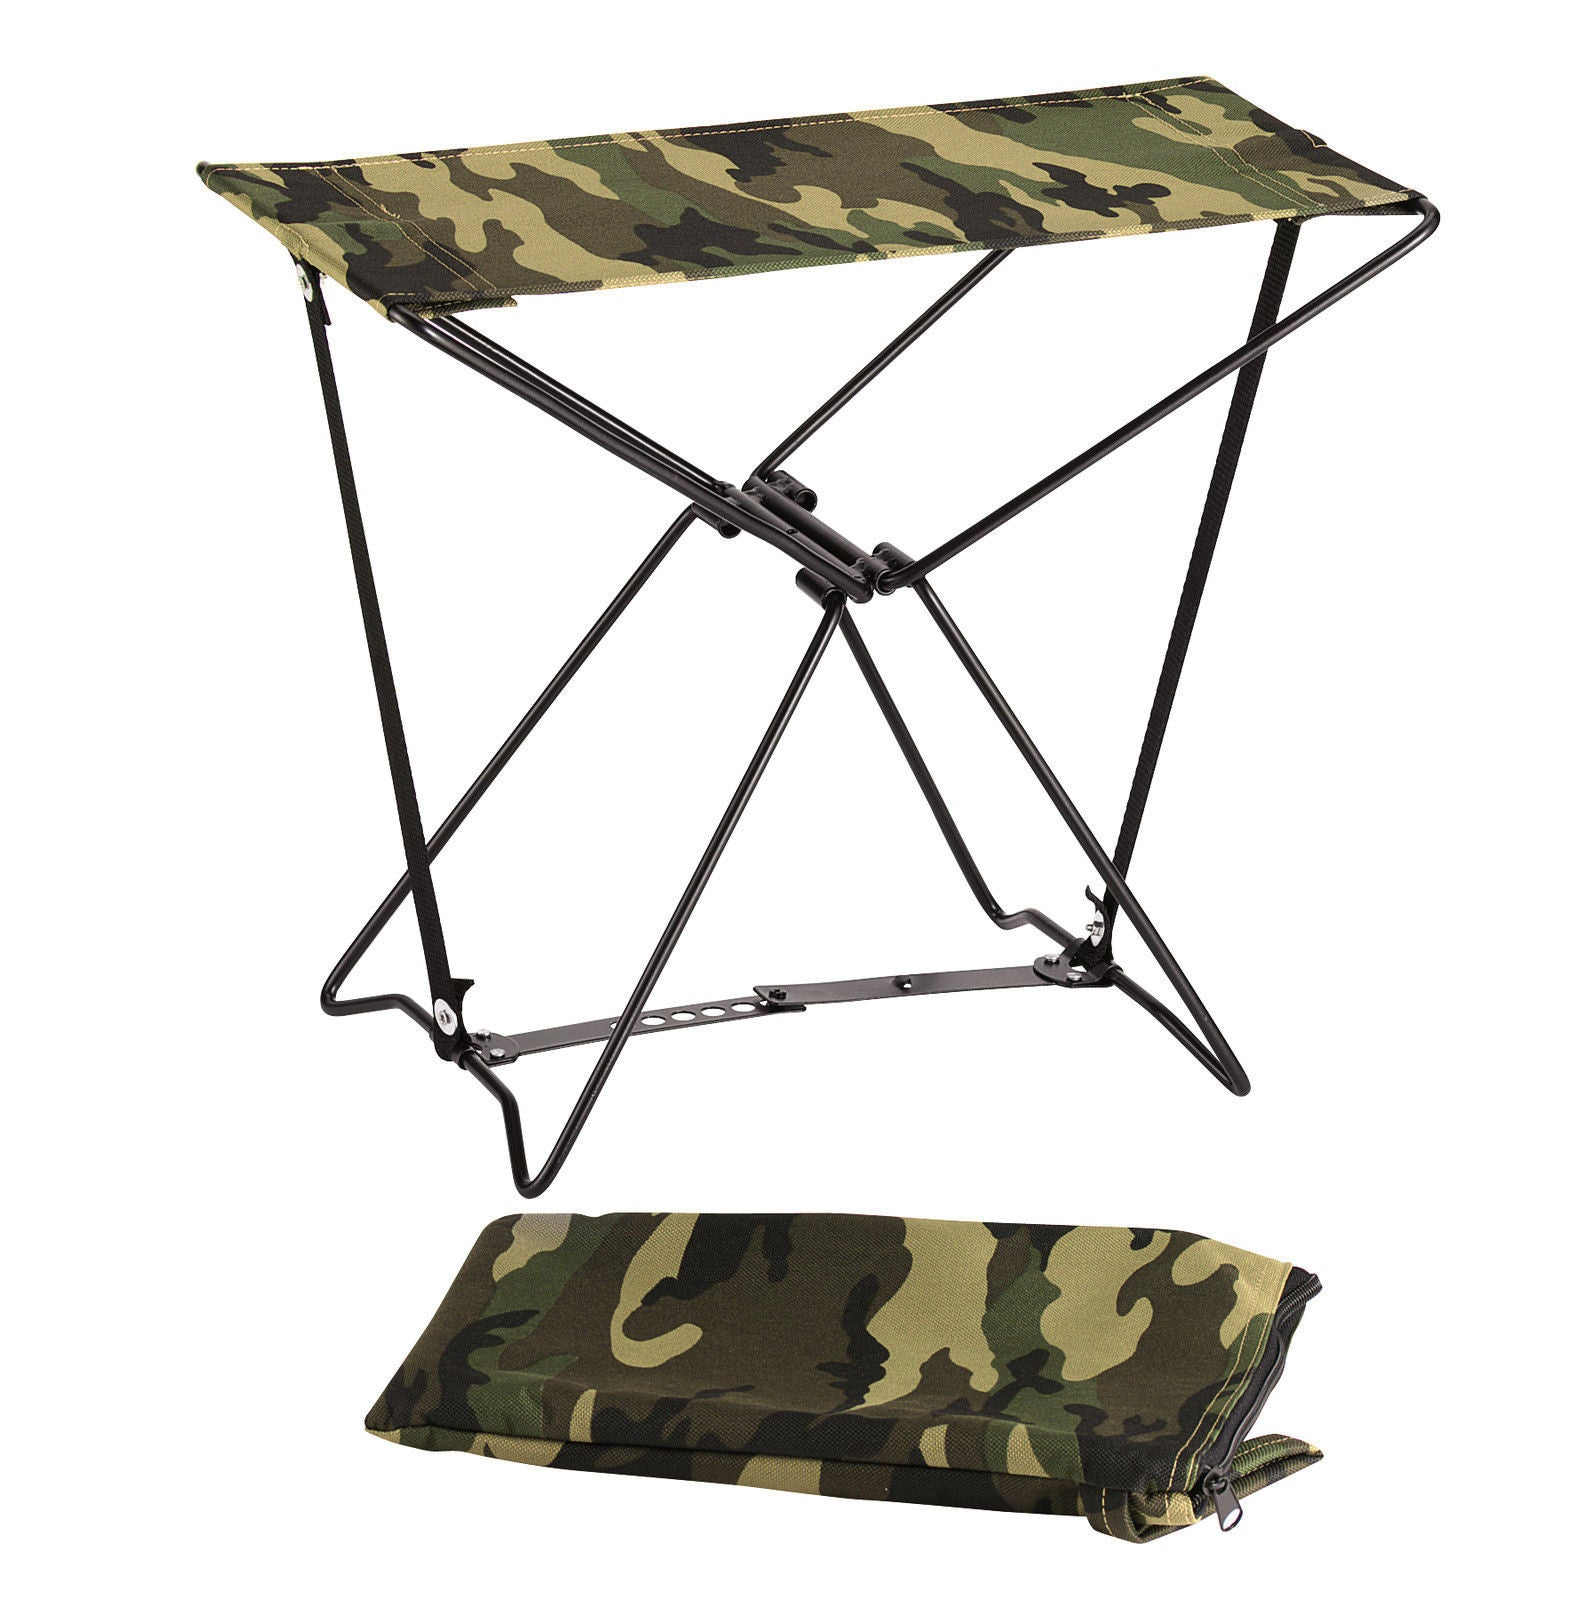 Folding Camping Stools Camouflage Hiking Chair Foldable